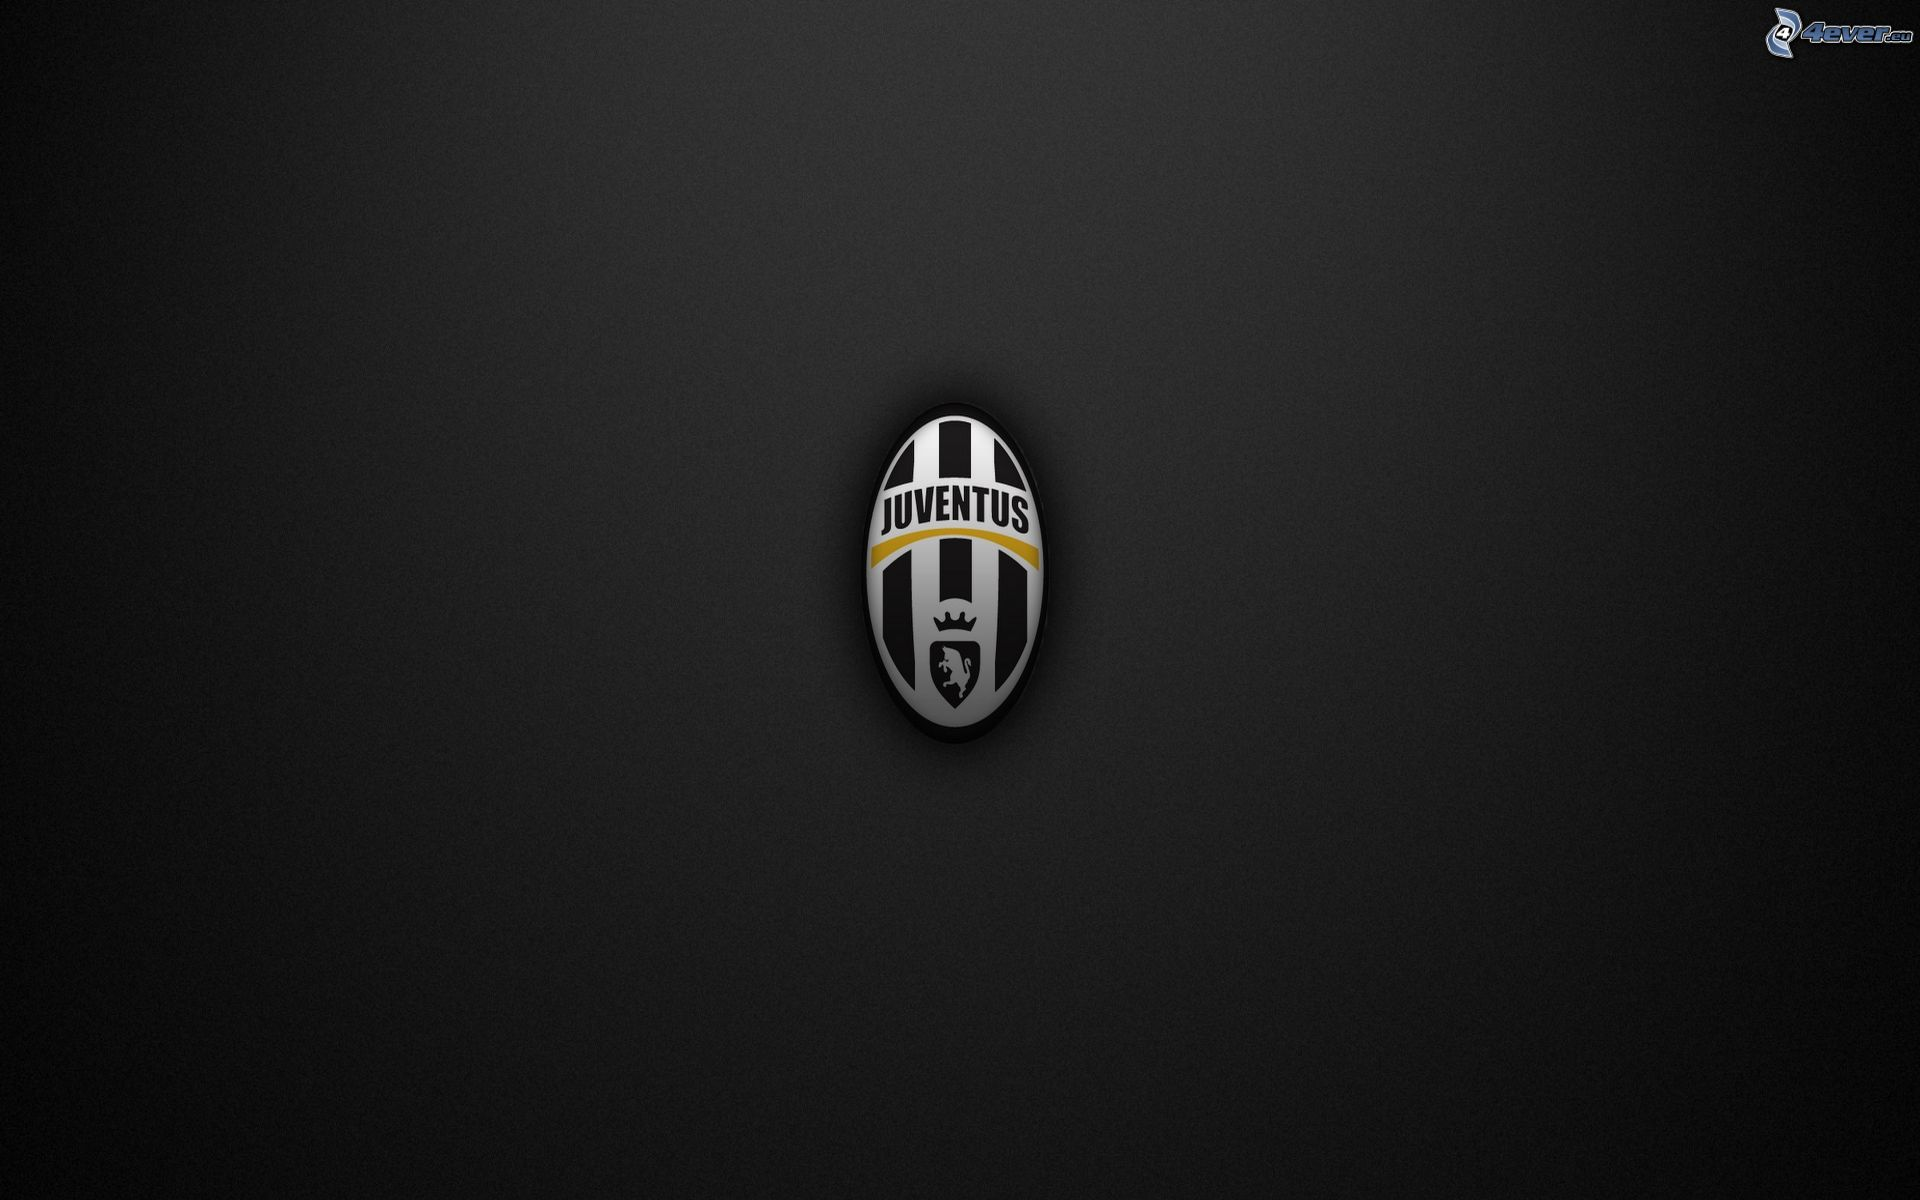 Juventus for Sfondo juventus hd